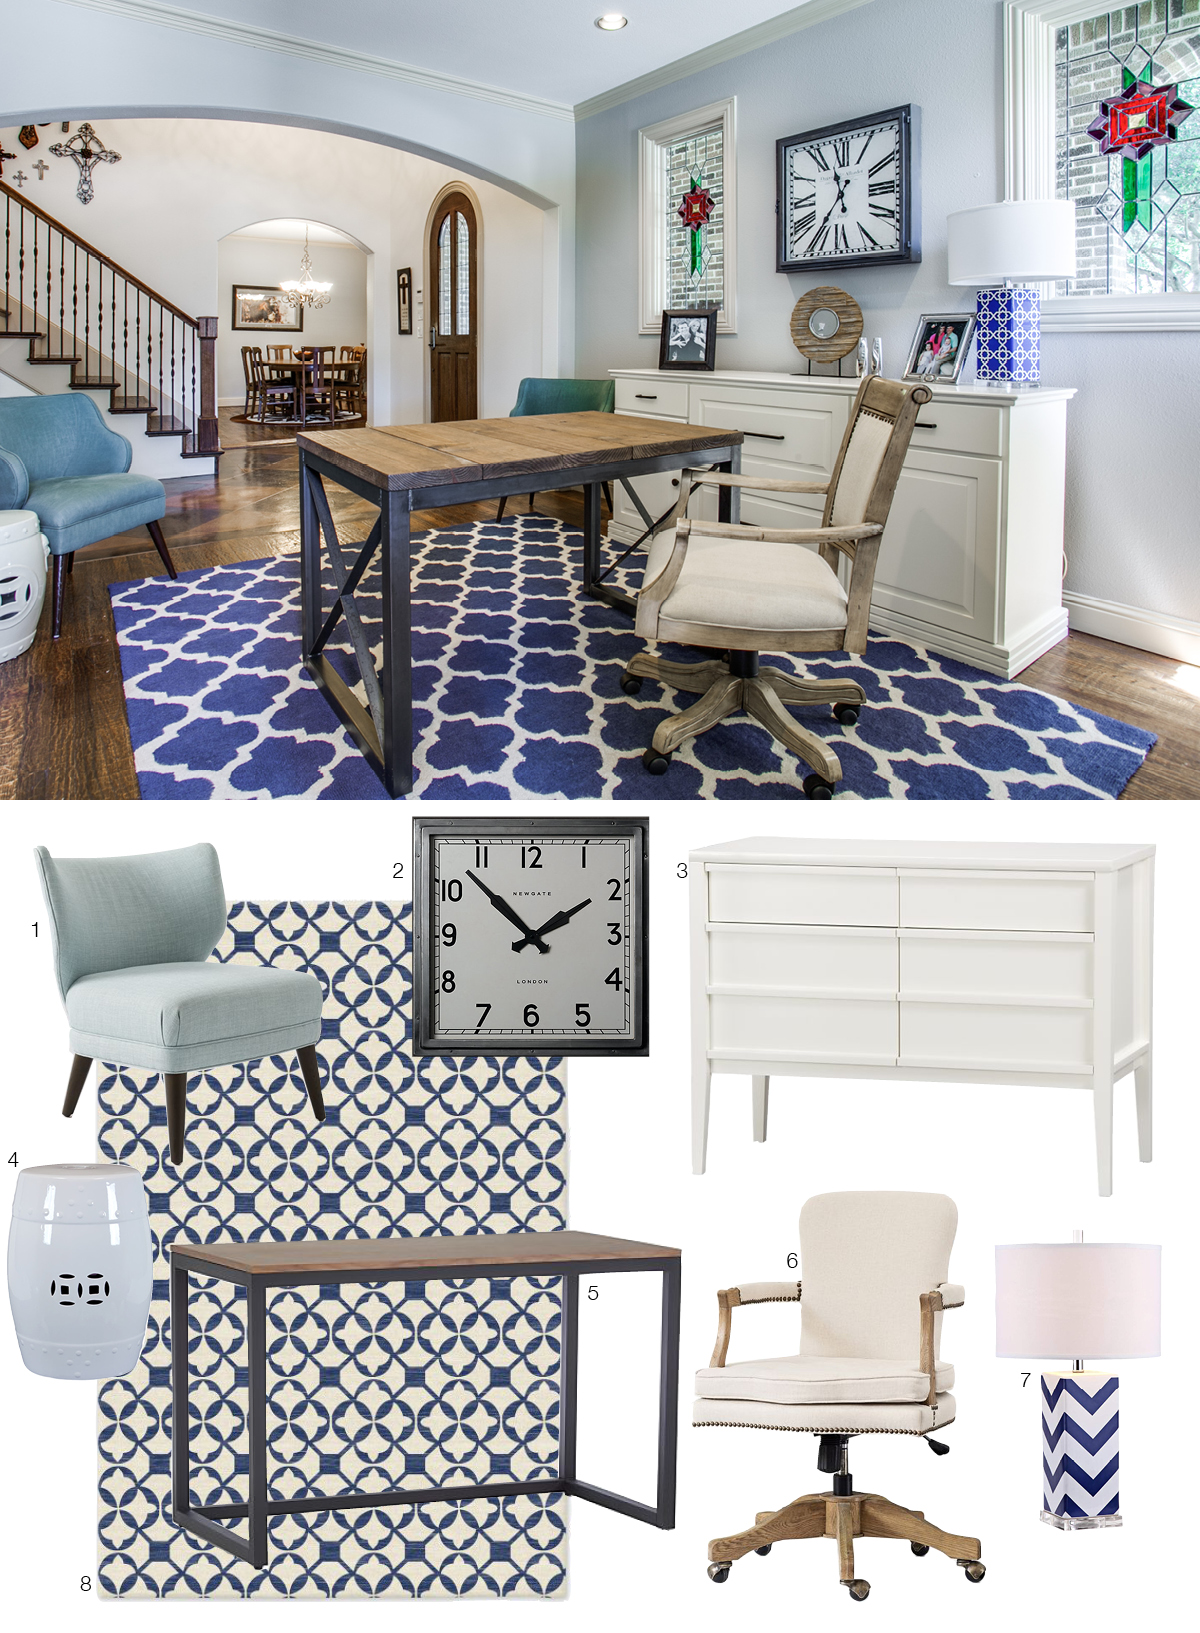 Room Re-Do: Chic Home Office